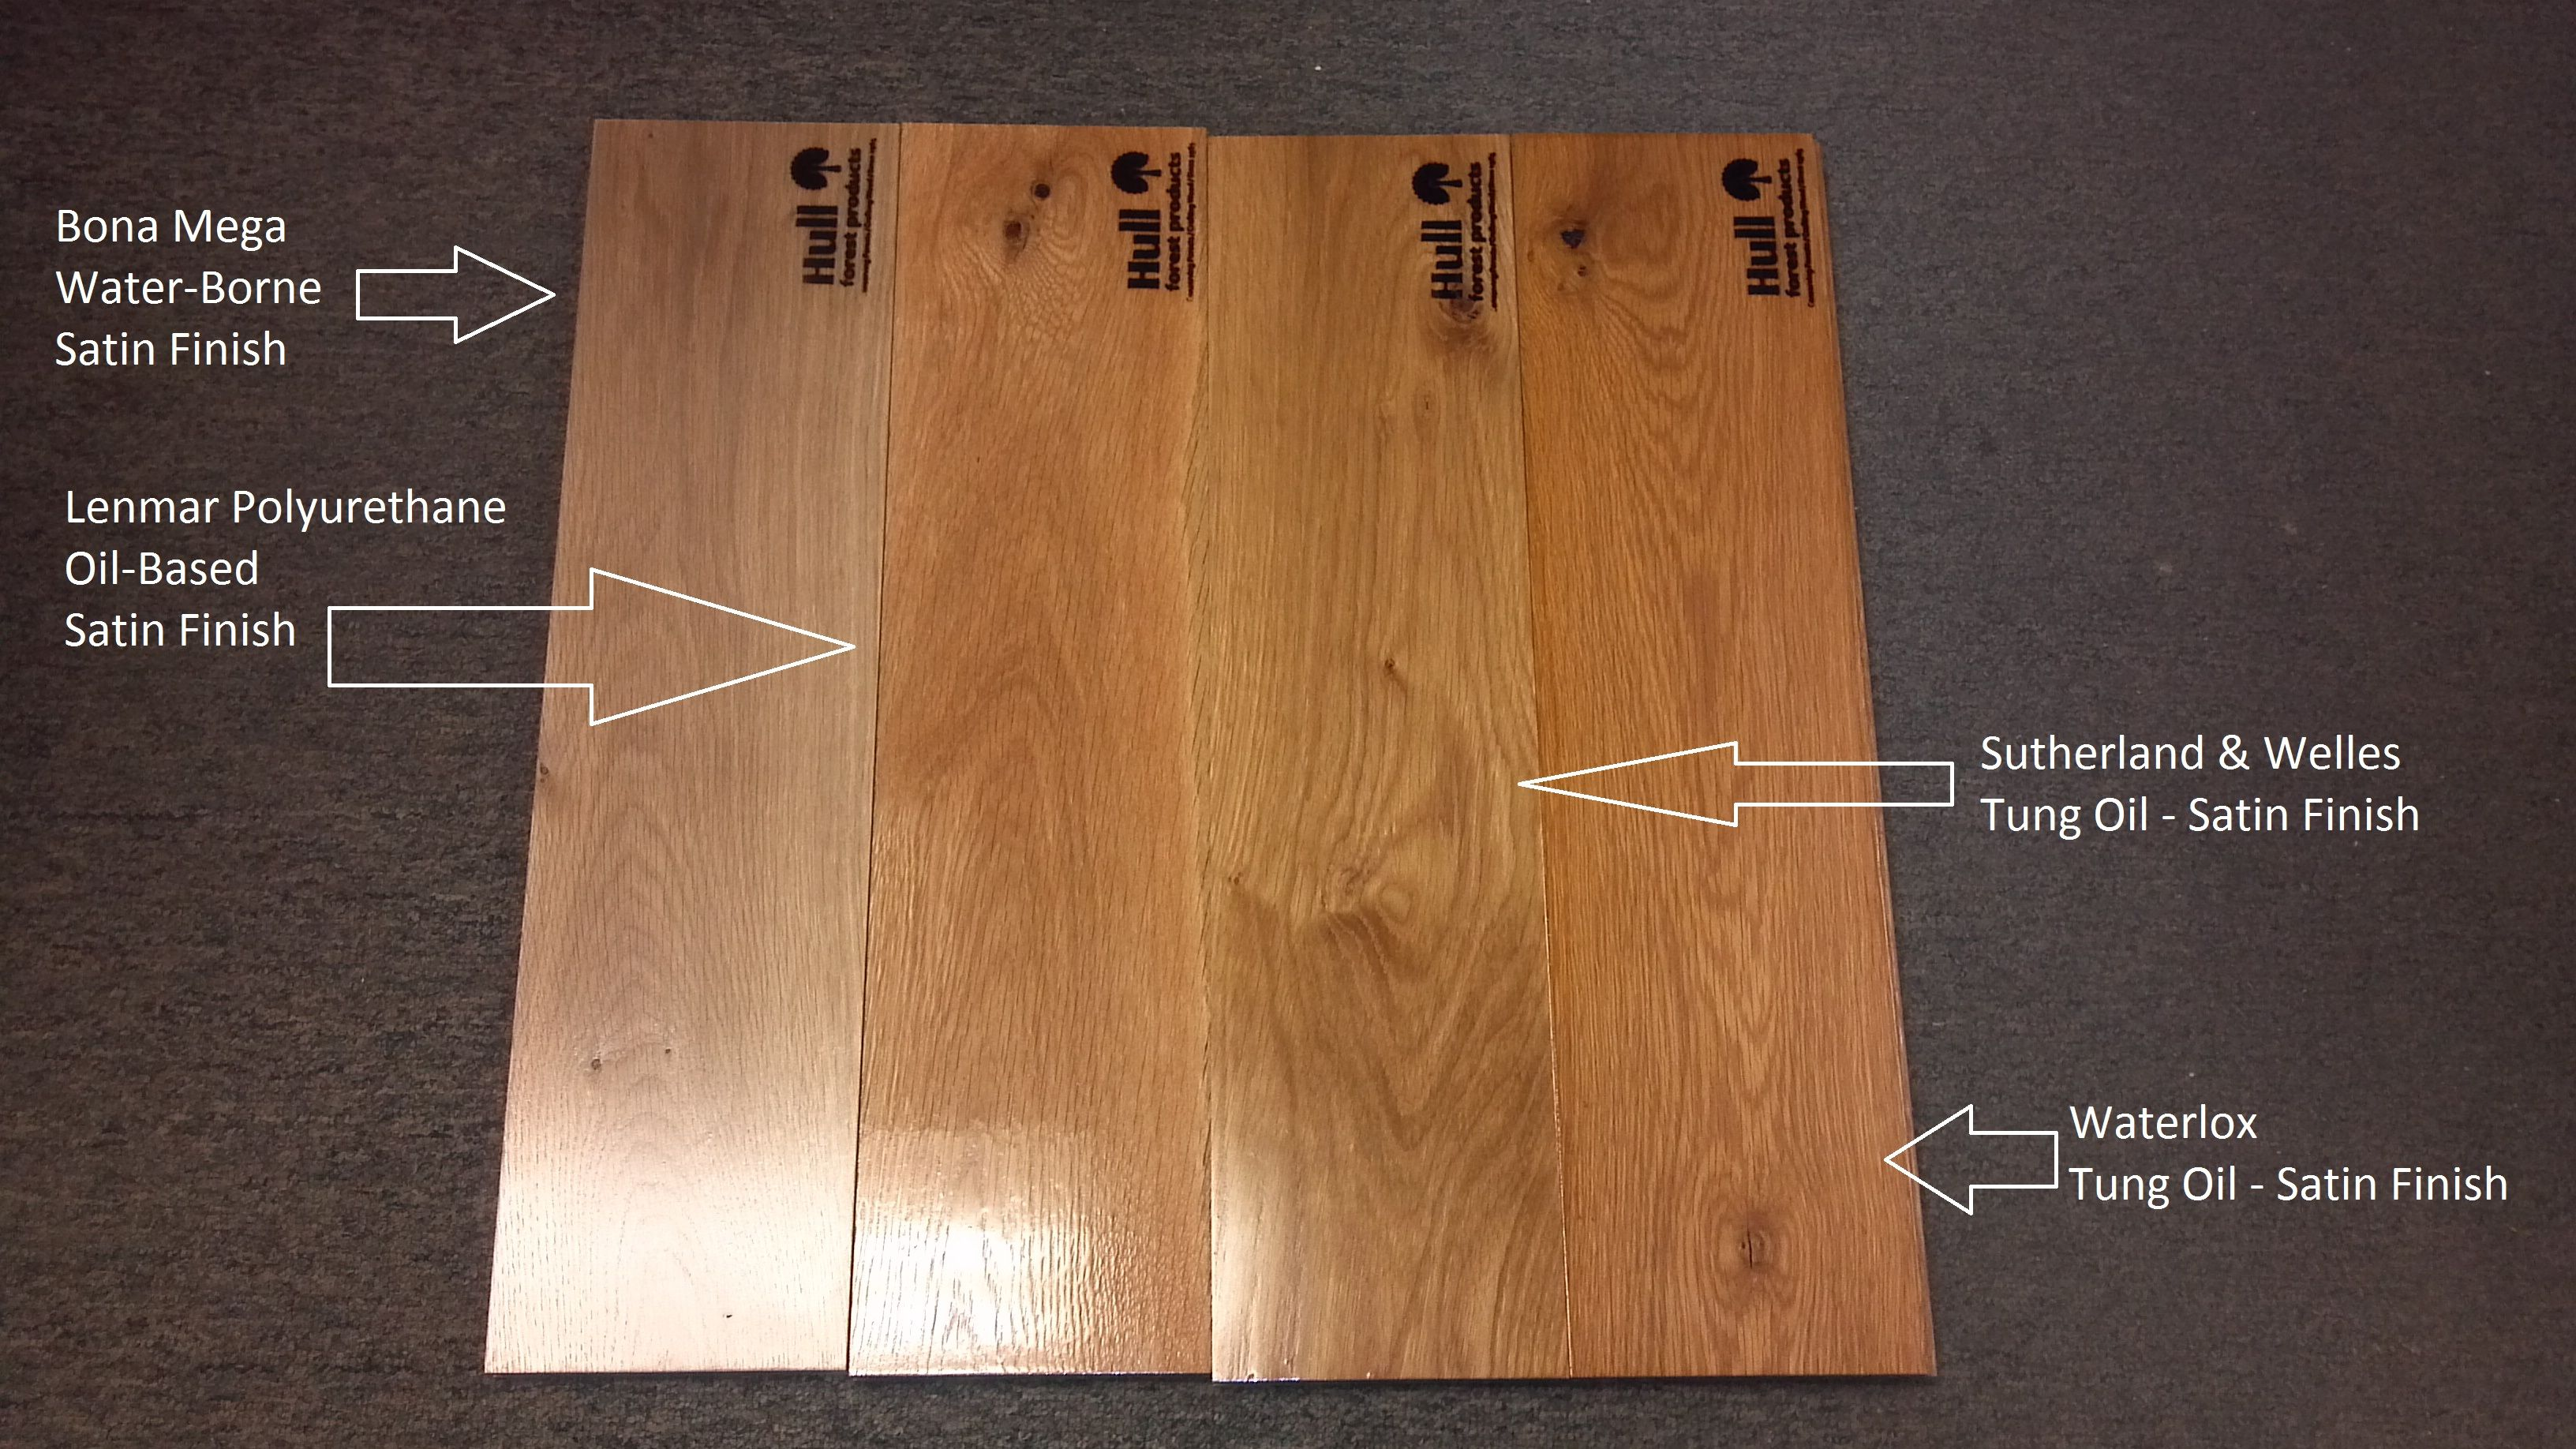 White Oak Floor Boards Labeled With Diffe Finishes Lied For Comparison Purposes